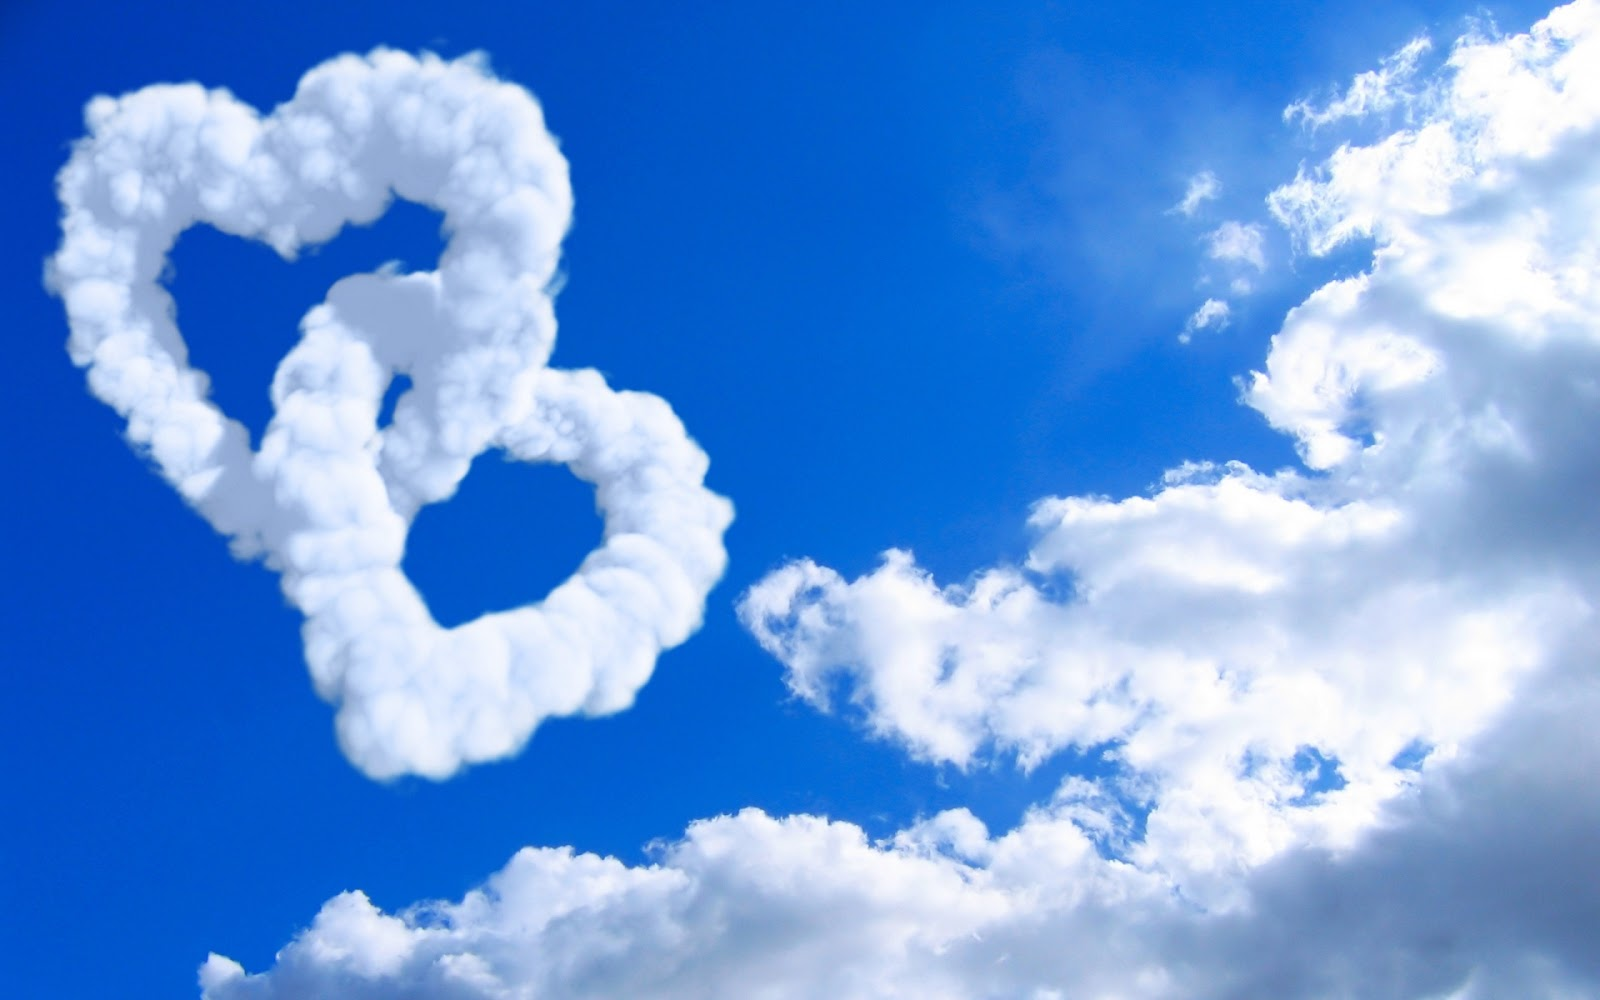 Love Hearts in Clouds 1920x100 Wallpaper